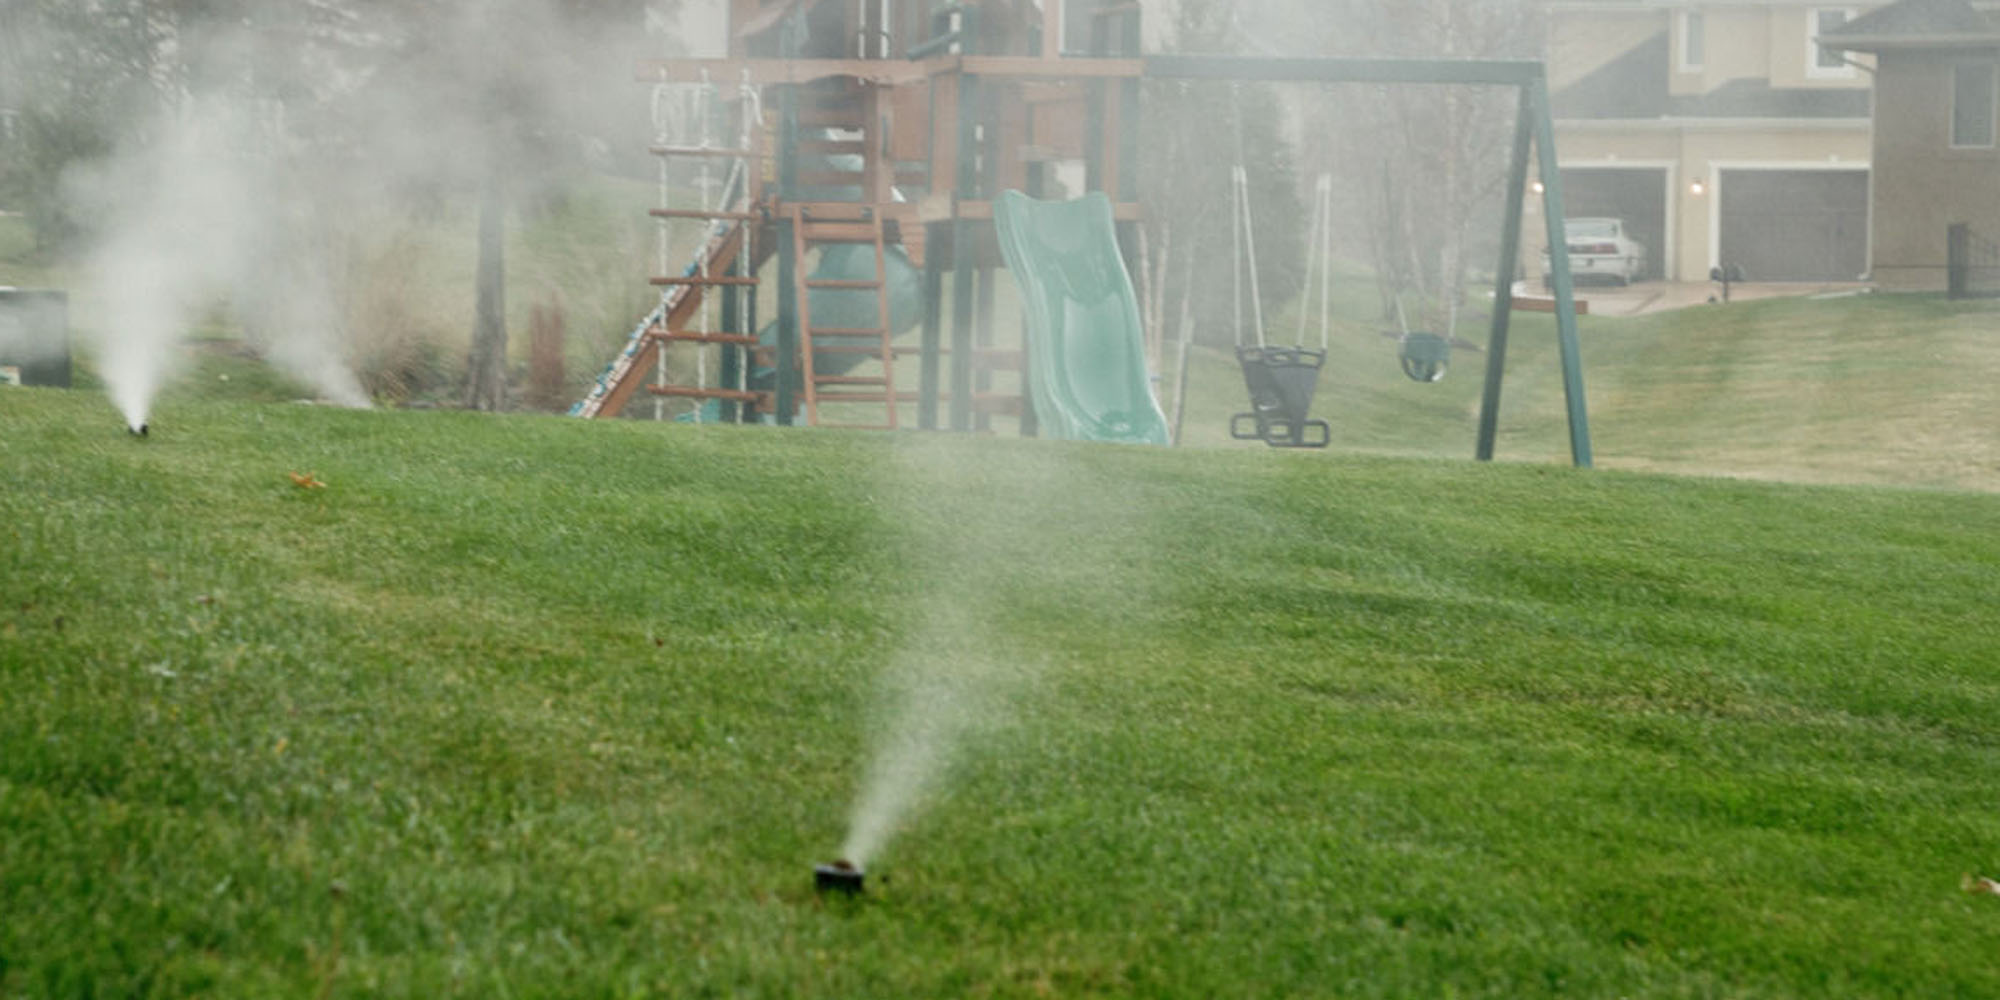 colorado sprinkler blowouts and winterization